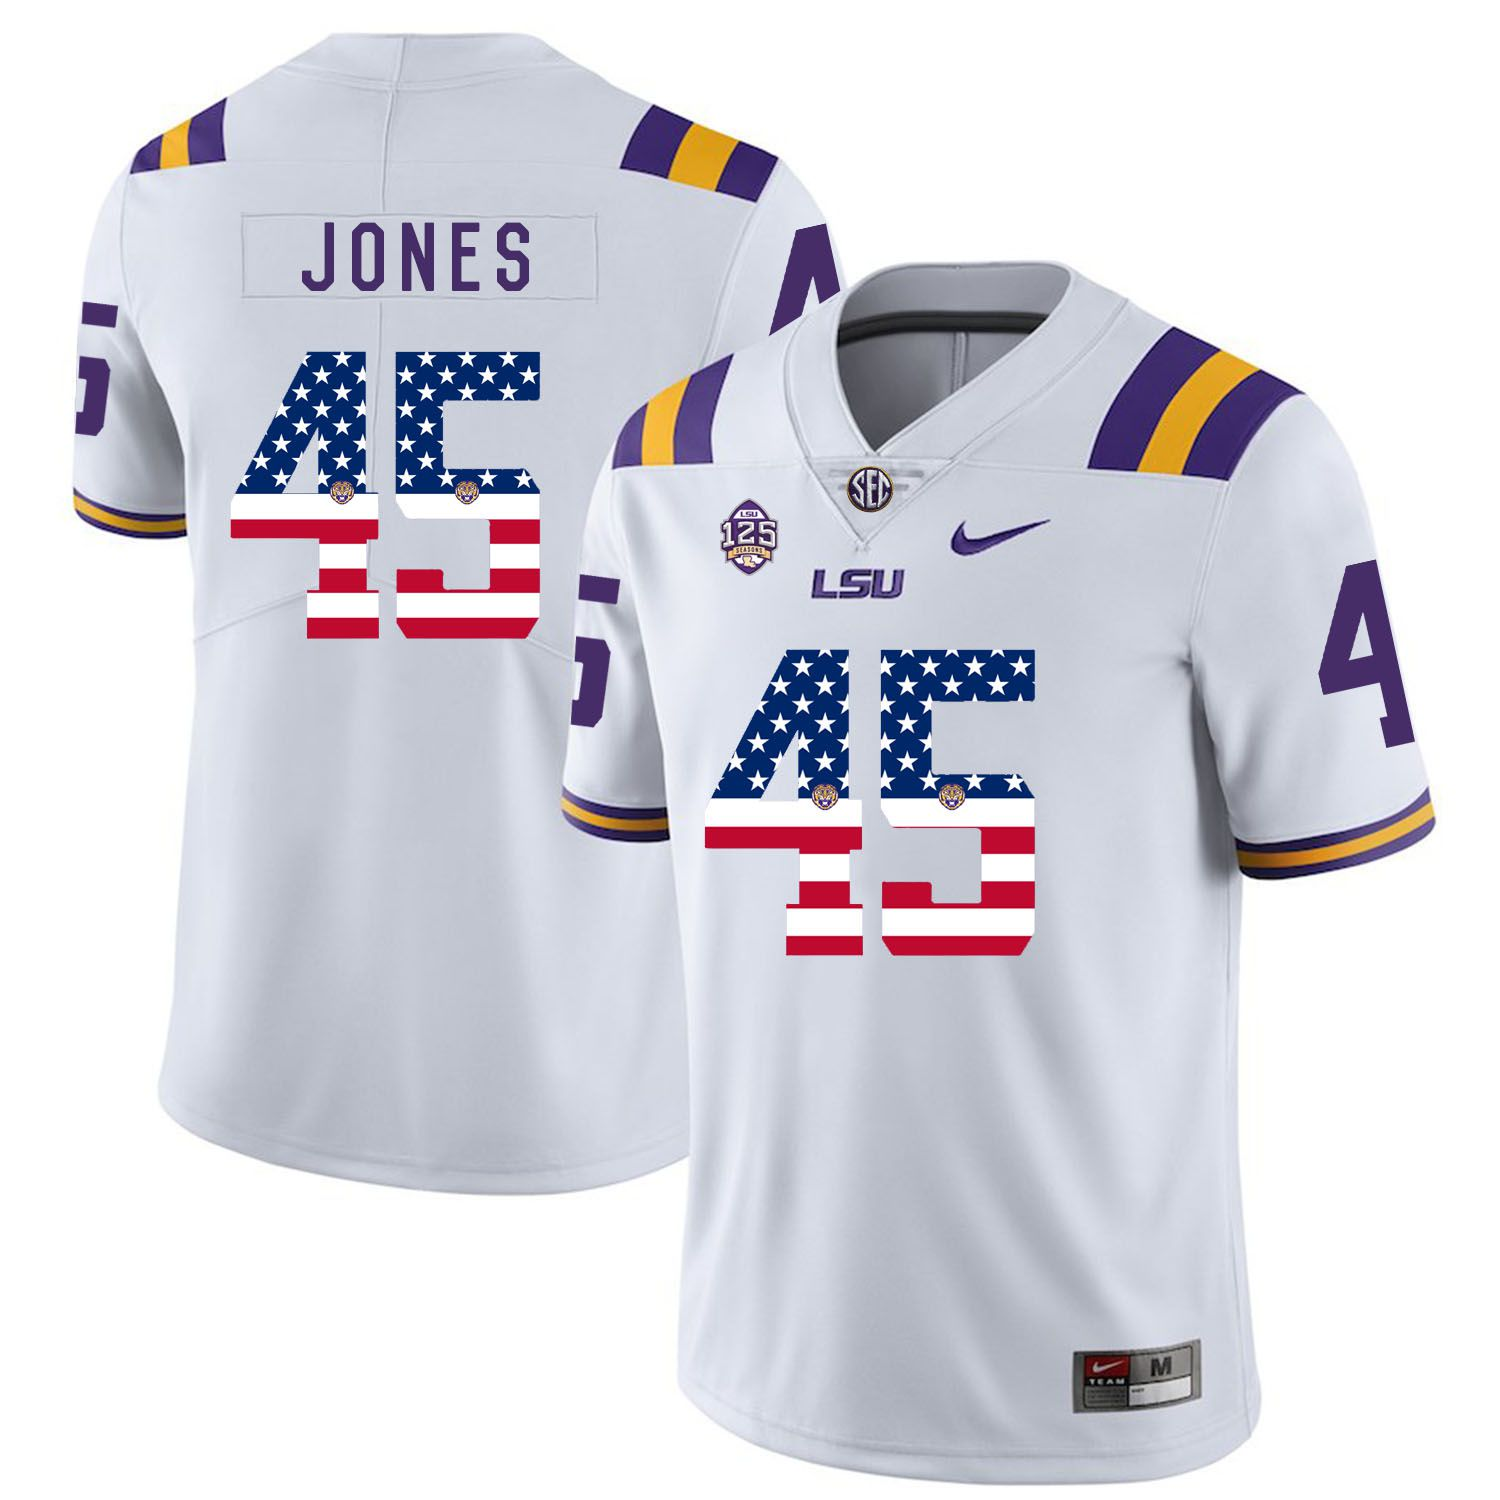 Men LSU Tigers 45 Jones White Flag Customized NCAA Jerseys